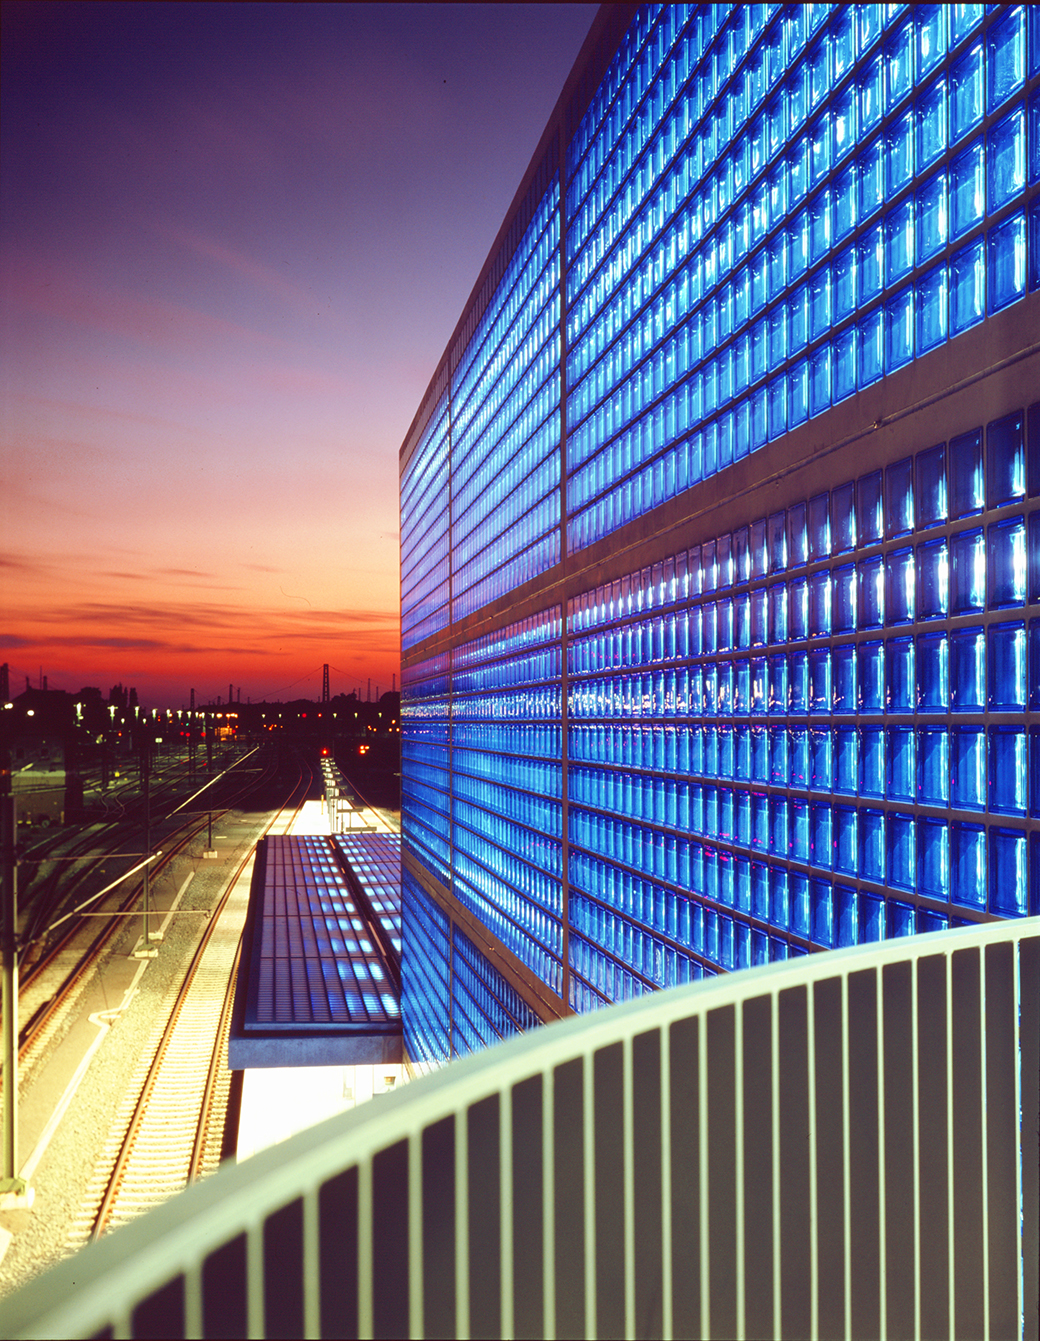 """Seves-sevesglassblock-solutions-smart-hannover-station """"width ="""" 1040 """"height ="""" 1341 """"srcset ="""" https://www.cosasdearquitectos.com/wp-content/uploads/Seves-sevesglassblock-soluciones-smart-hannover -station.jpg 1040w, https://www.cosasdearquitectos.com/wp-content/uploads/Seves-sevesglassblock-soluciones-smart-hannover-station-233x300.jpg 233w, https://www.cosasdearquitectos.com/wp -content / uploads / Seves-sevesglassblock-solutions-smart-hannover-station-794x1024.jpg 794w """"sizes ="""" (max-width: 1040px) 100vw, 1040px """"/></p> <h3 style="""